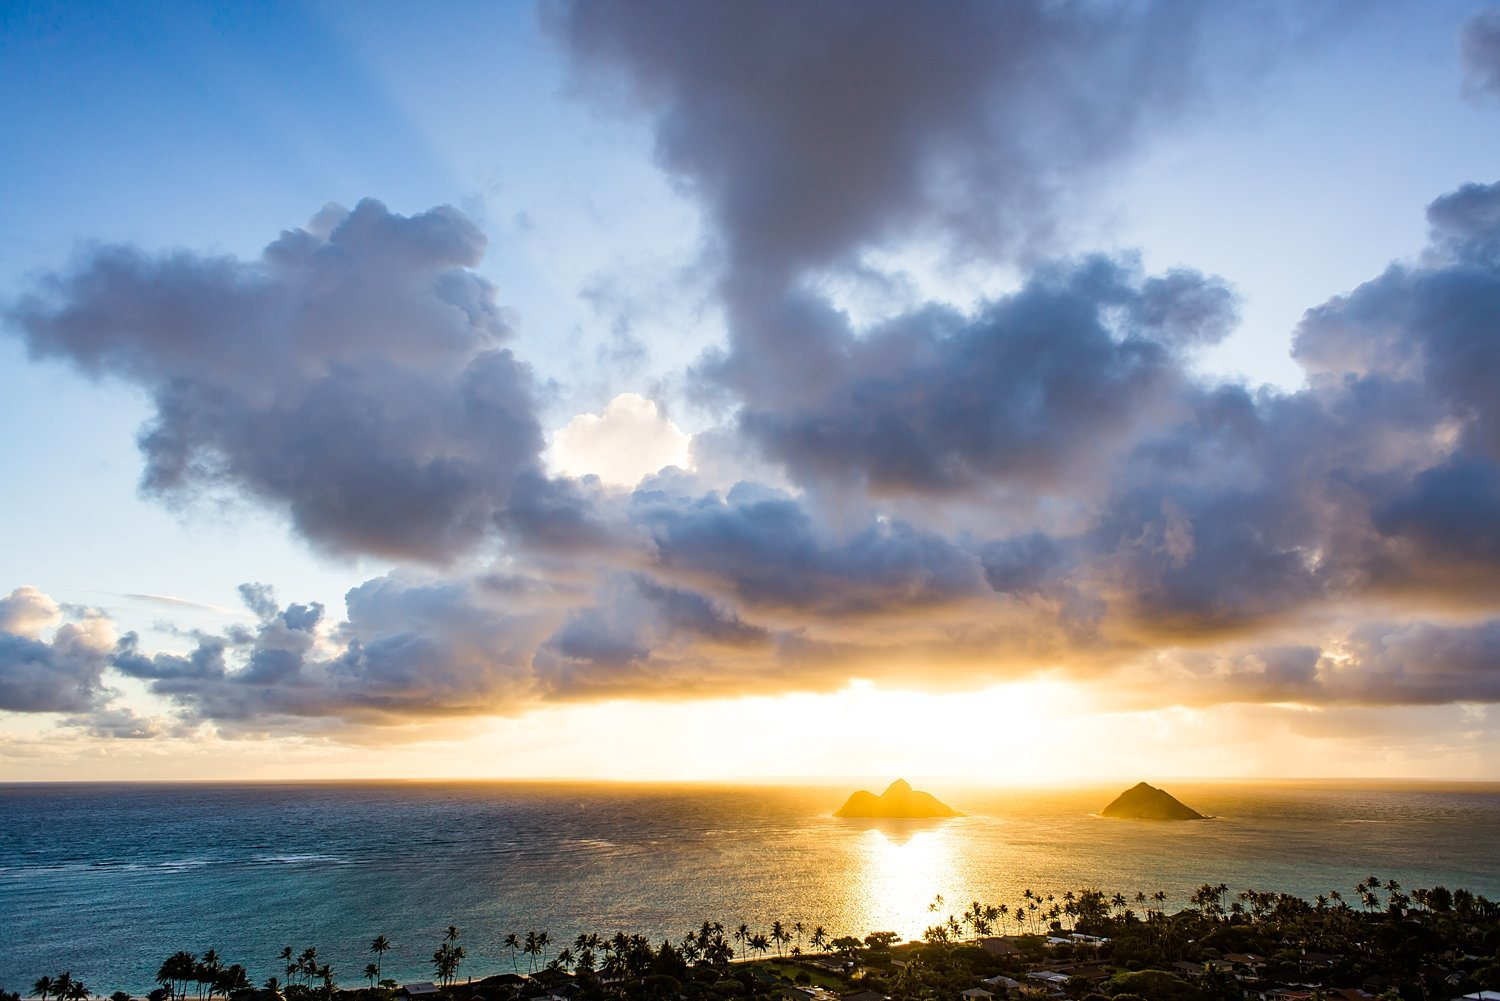 Sunrise over the Pacific ocean and the Na Mokulua twin islands of Oahu